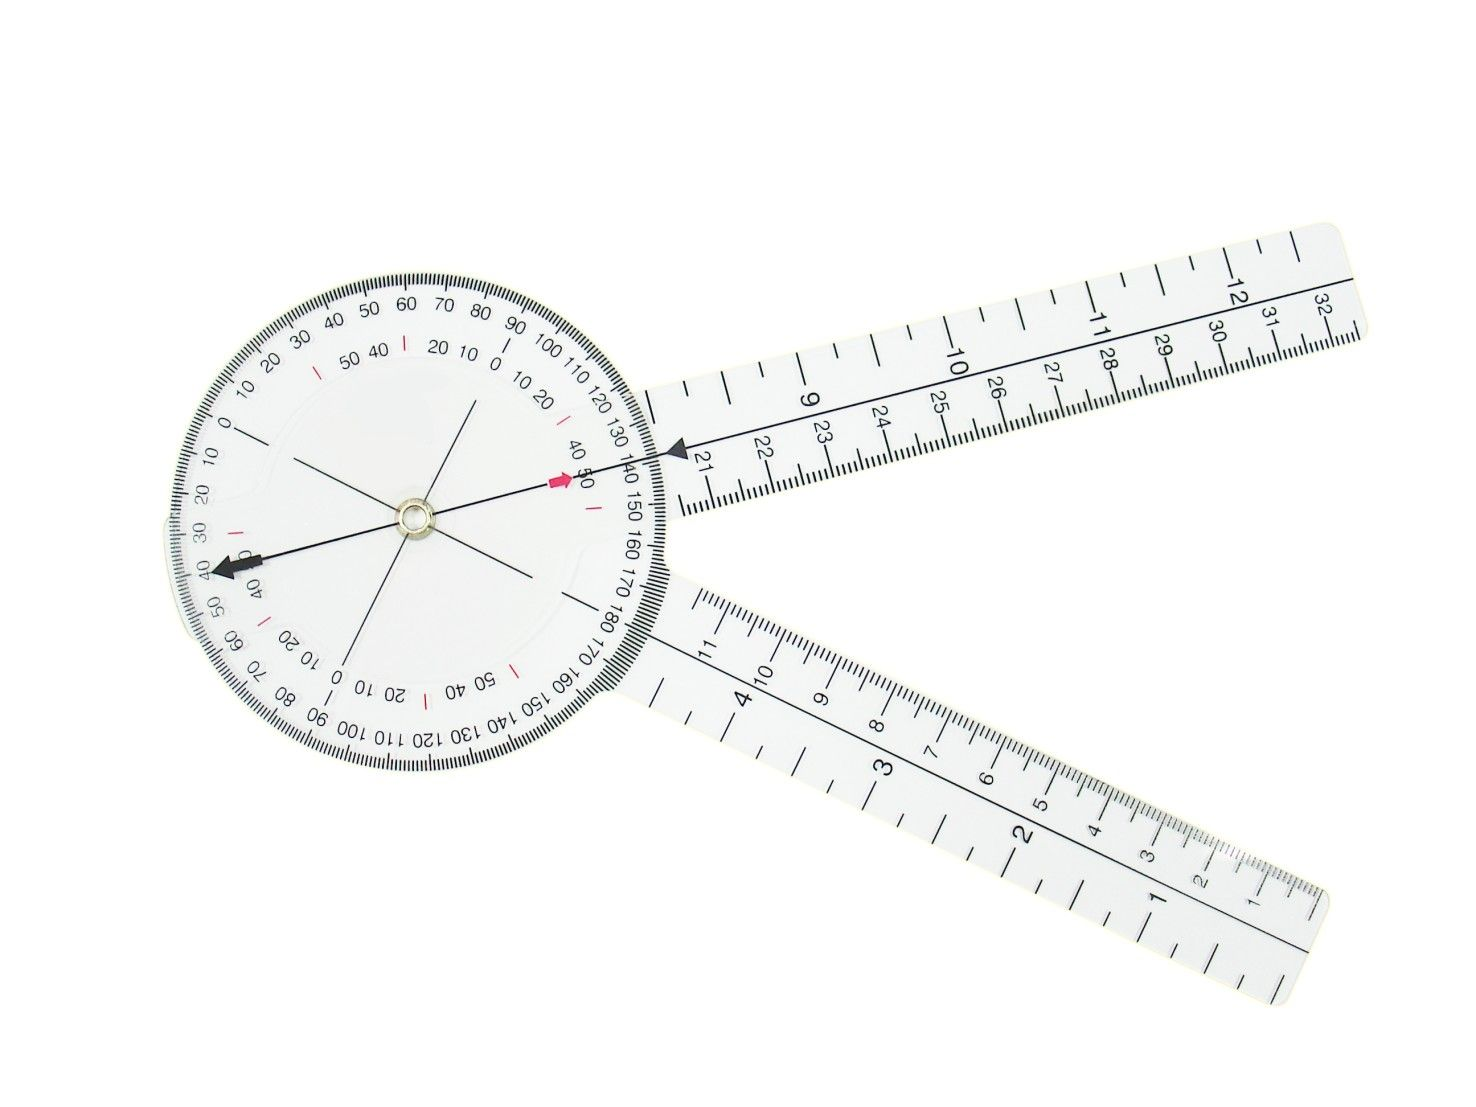 Measuring Range of Motion; In occupational therapy and